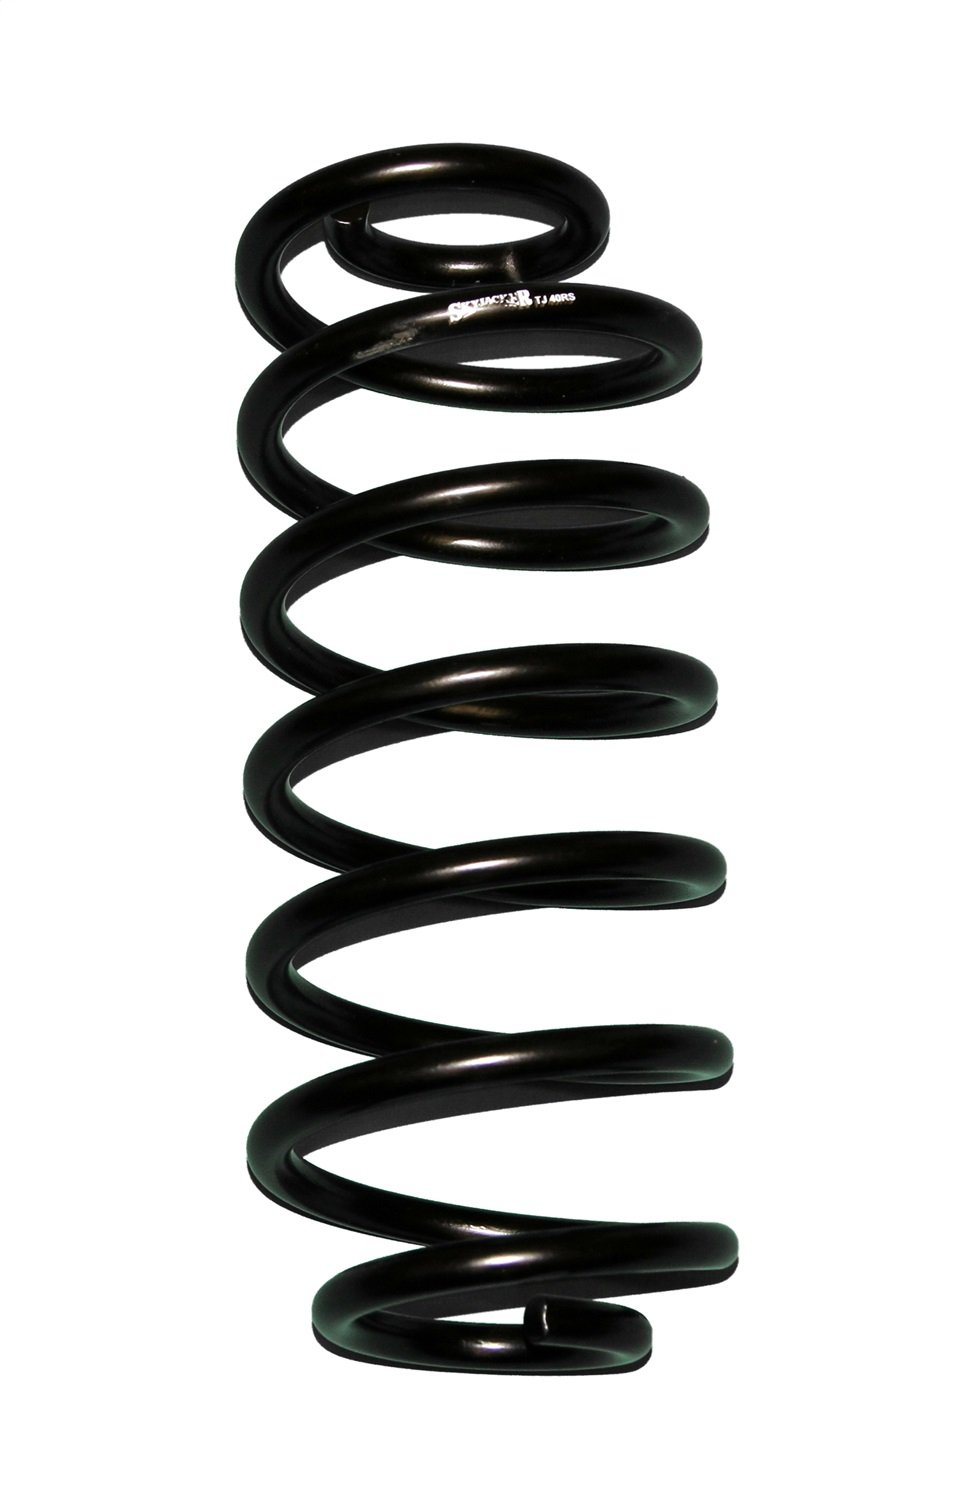 Skyjacker TJ40R - Skyjacker Softride Coil Springs